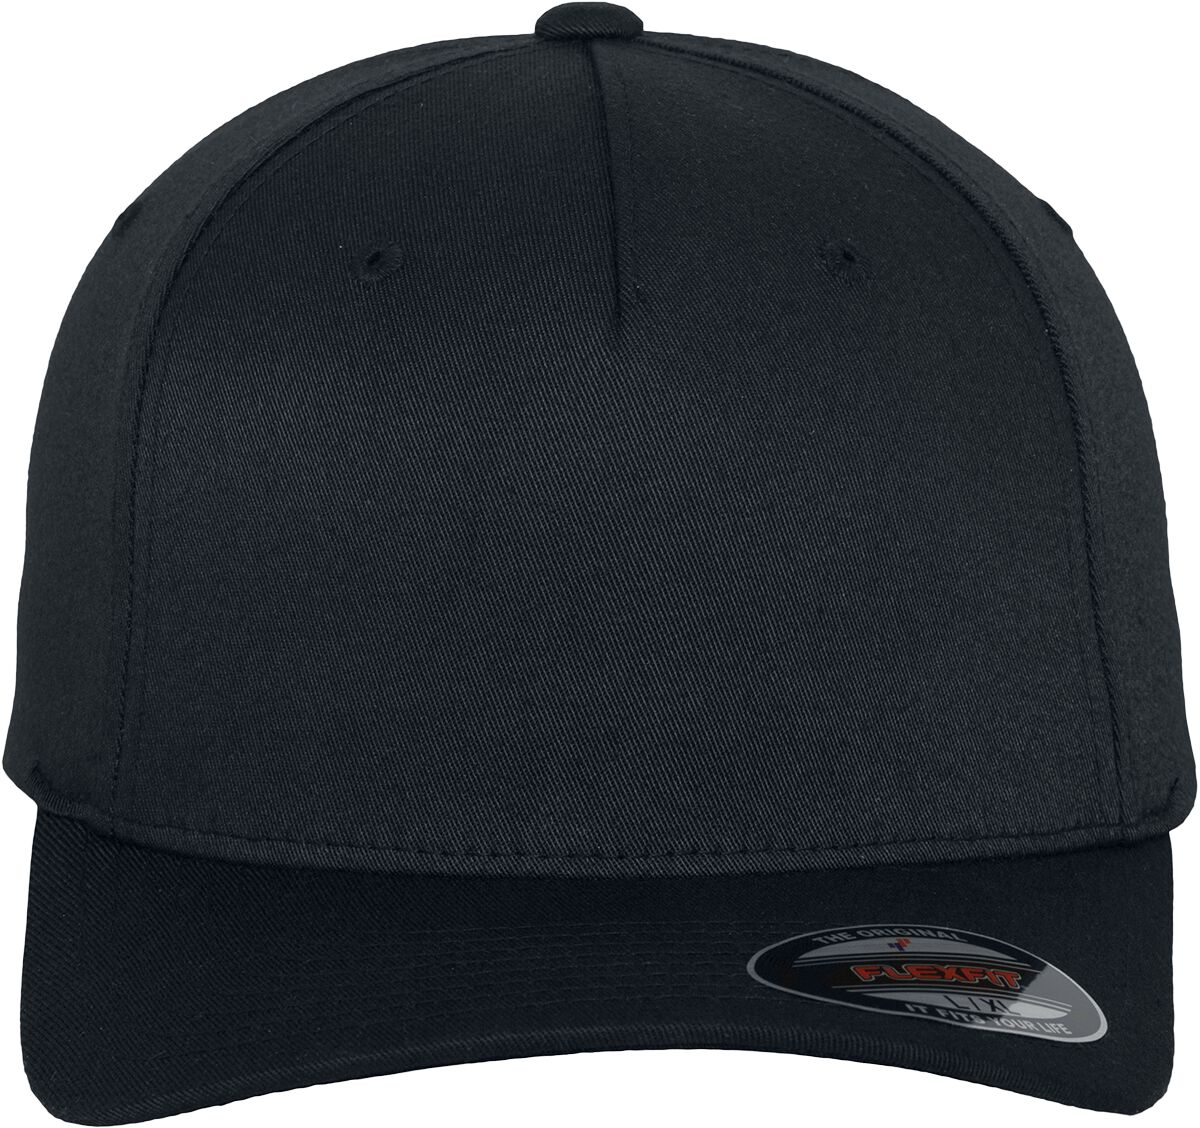 Image of Flexfit Flexfit 5 Panel Flexcap schwarz